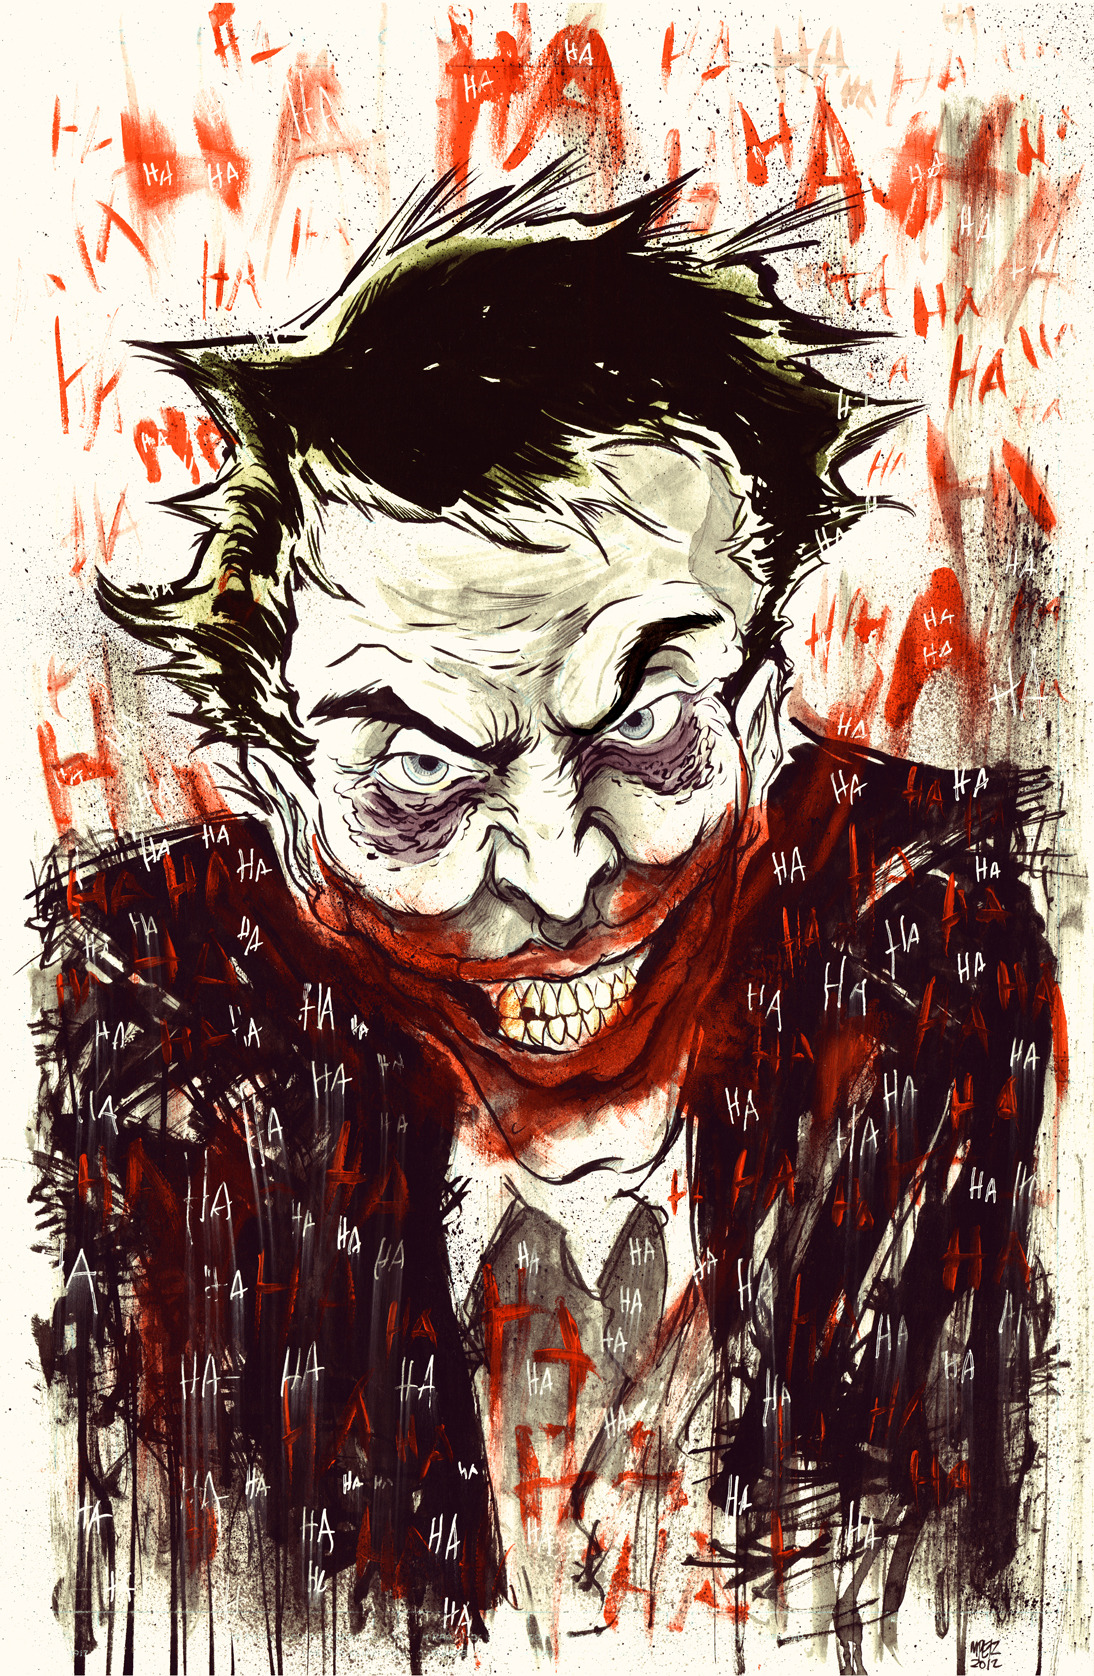 Finished Joker illustration.  -M